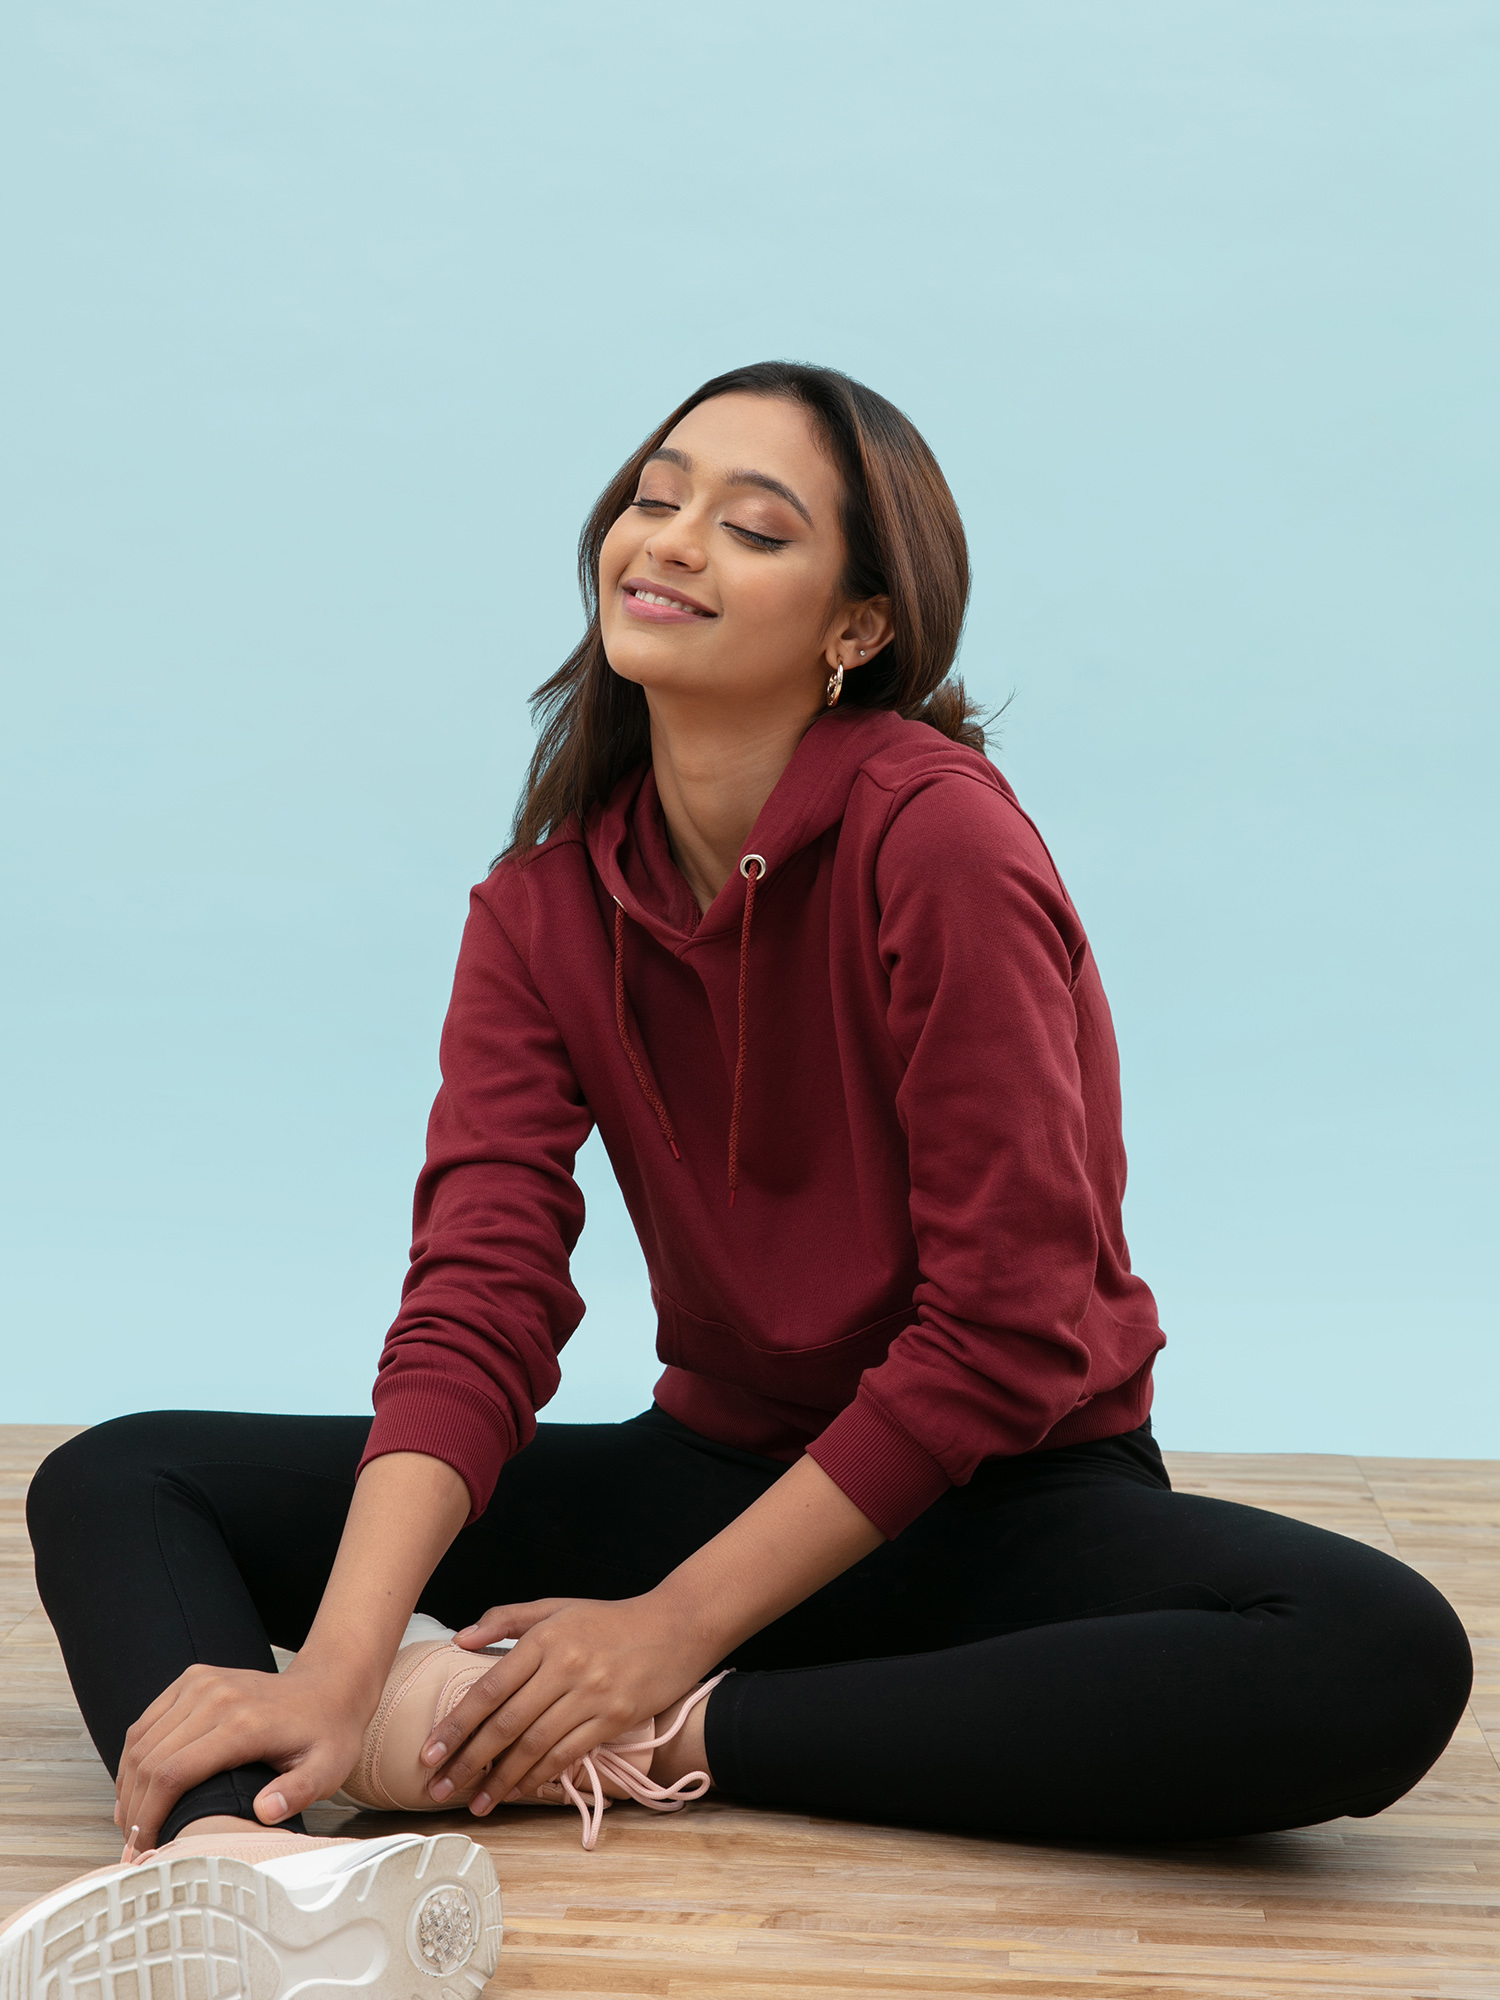 Tops-Pocket Full Of Maroon Hoodie1